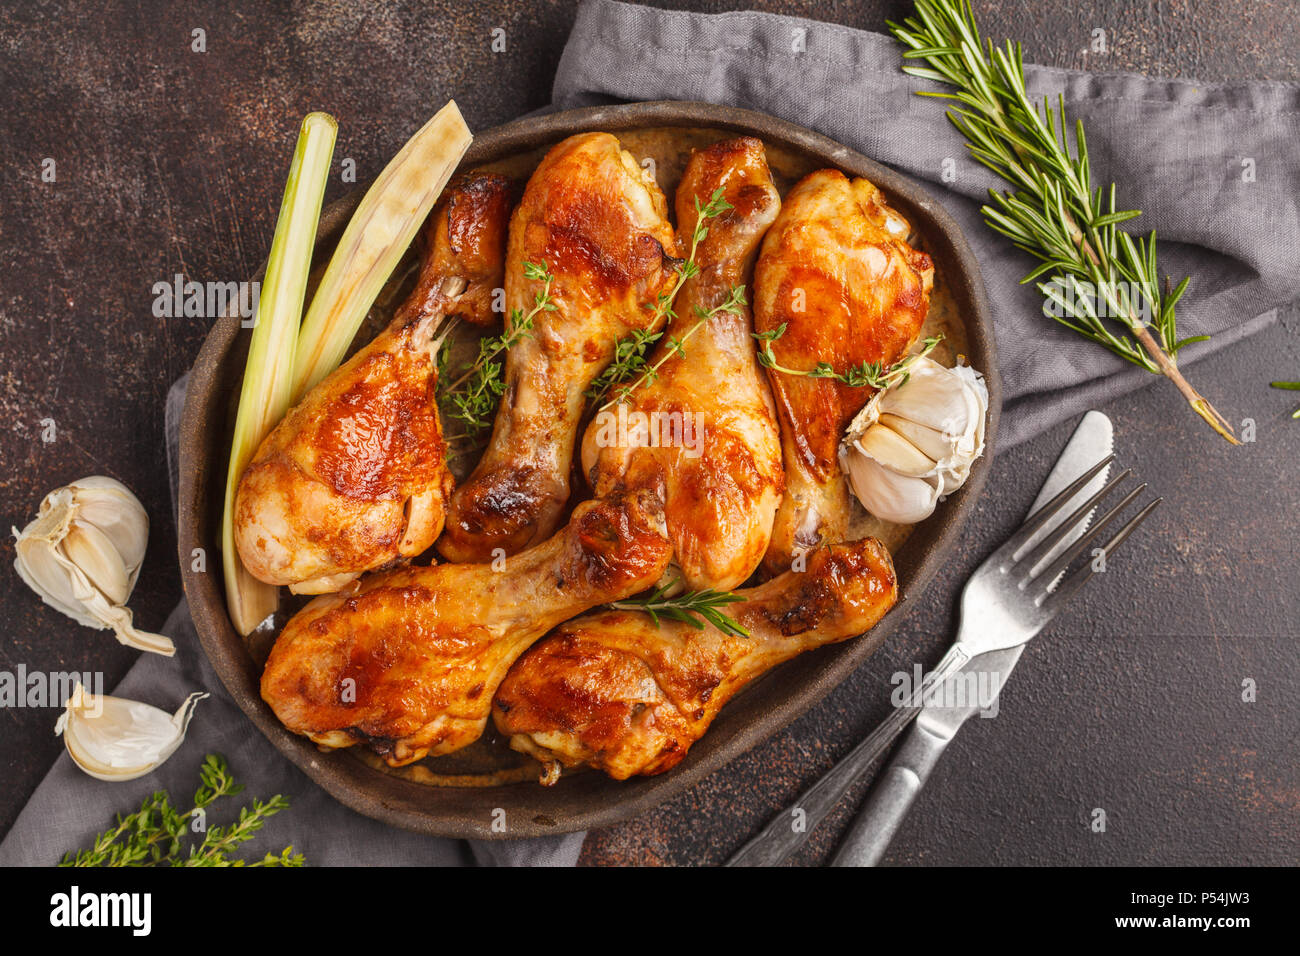 Grilled spicy chicken legs baked with garlic, rosemary and thyme. Top view, dark background. - Stock Image